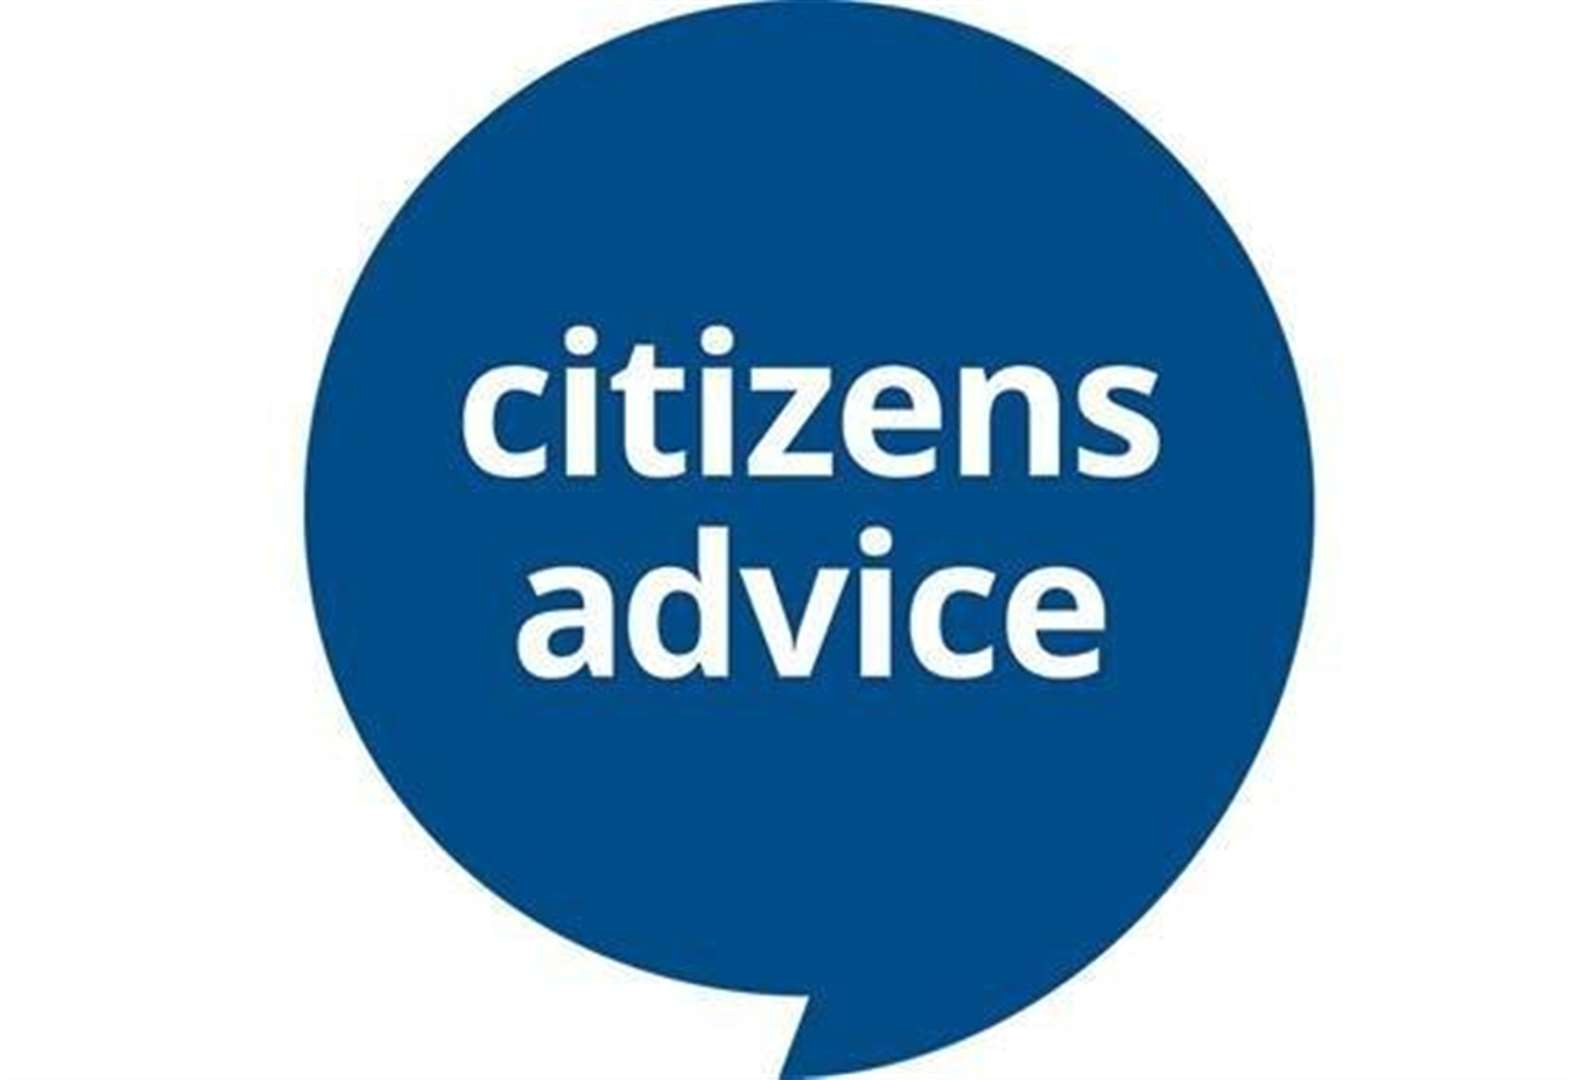 Sudbury Citizens Advice service welcomes proposals to delay budget cuts